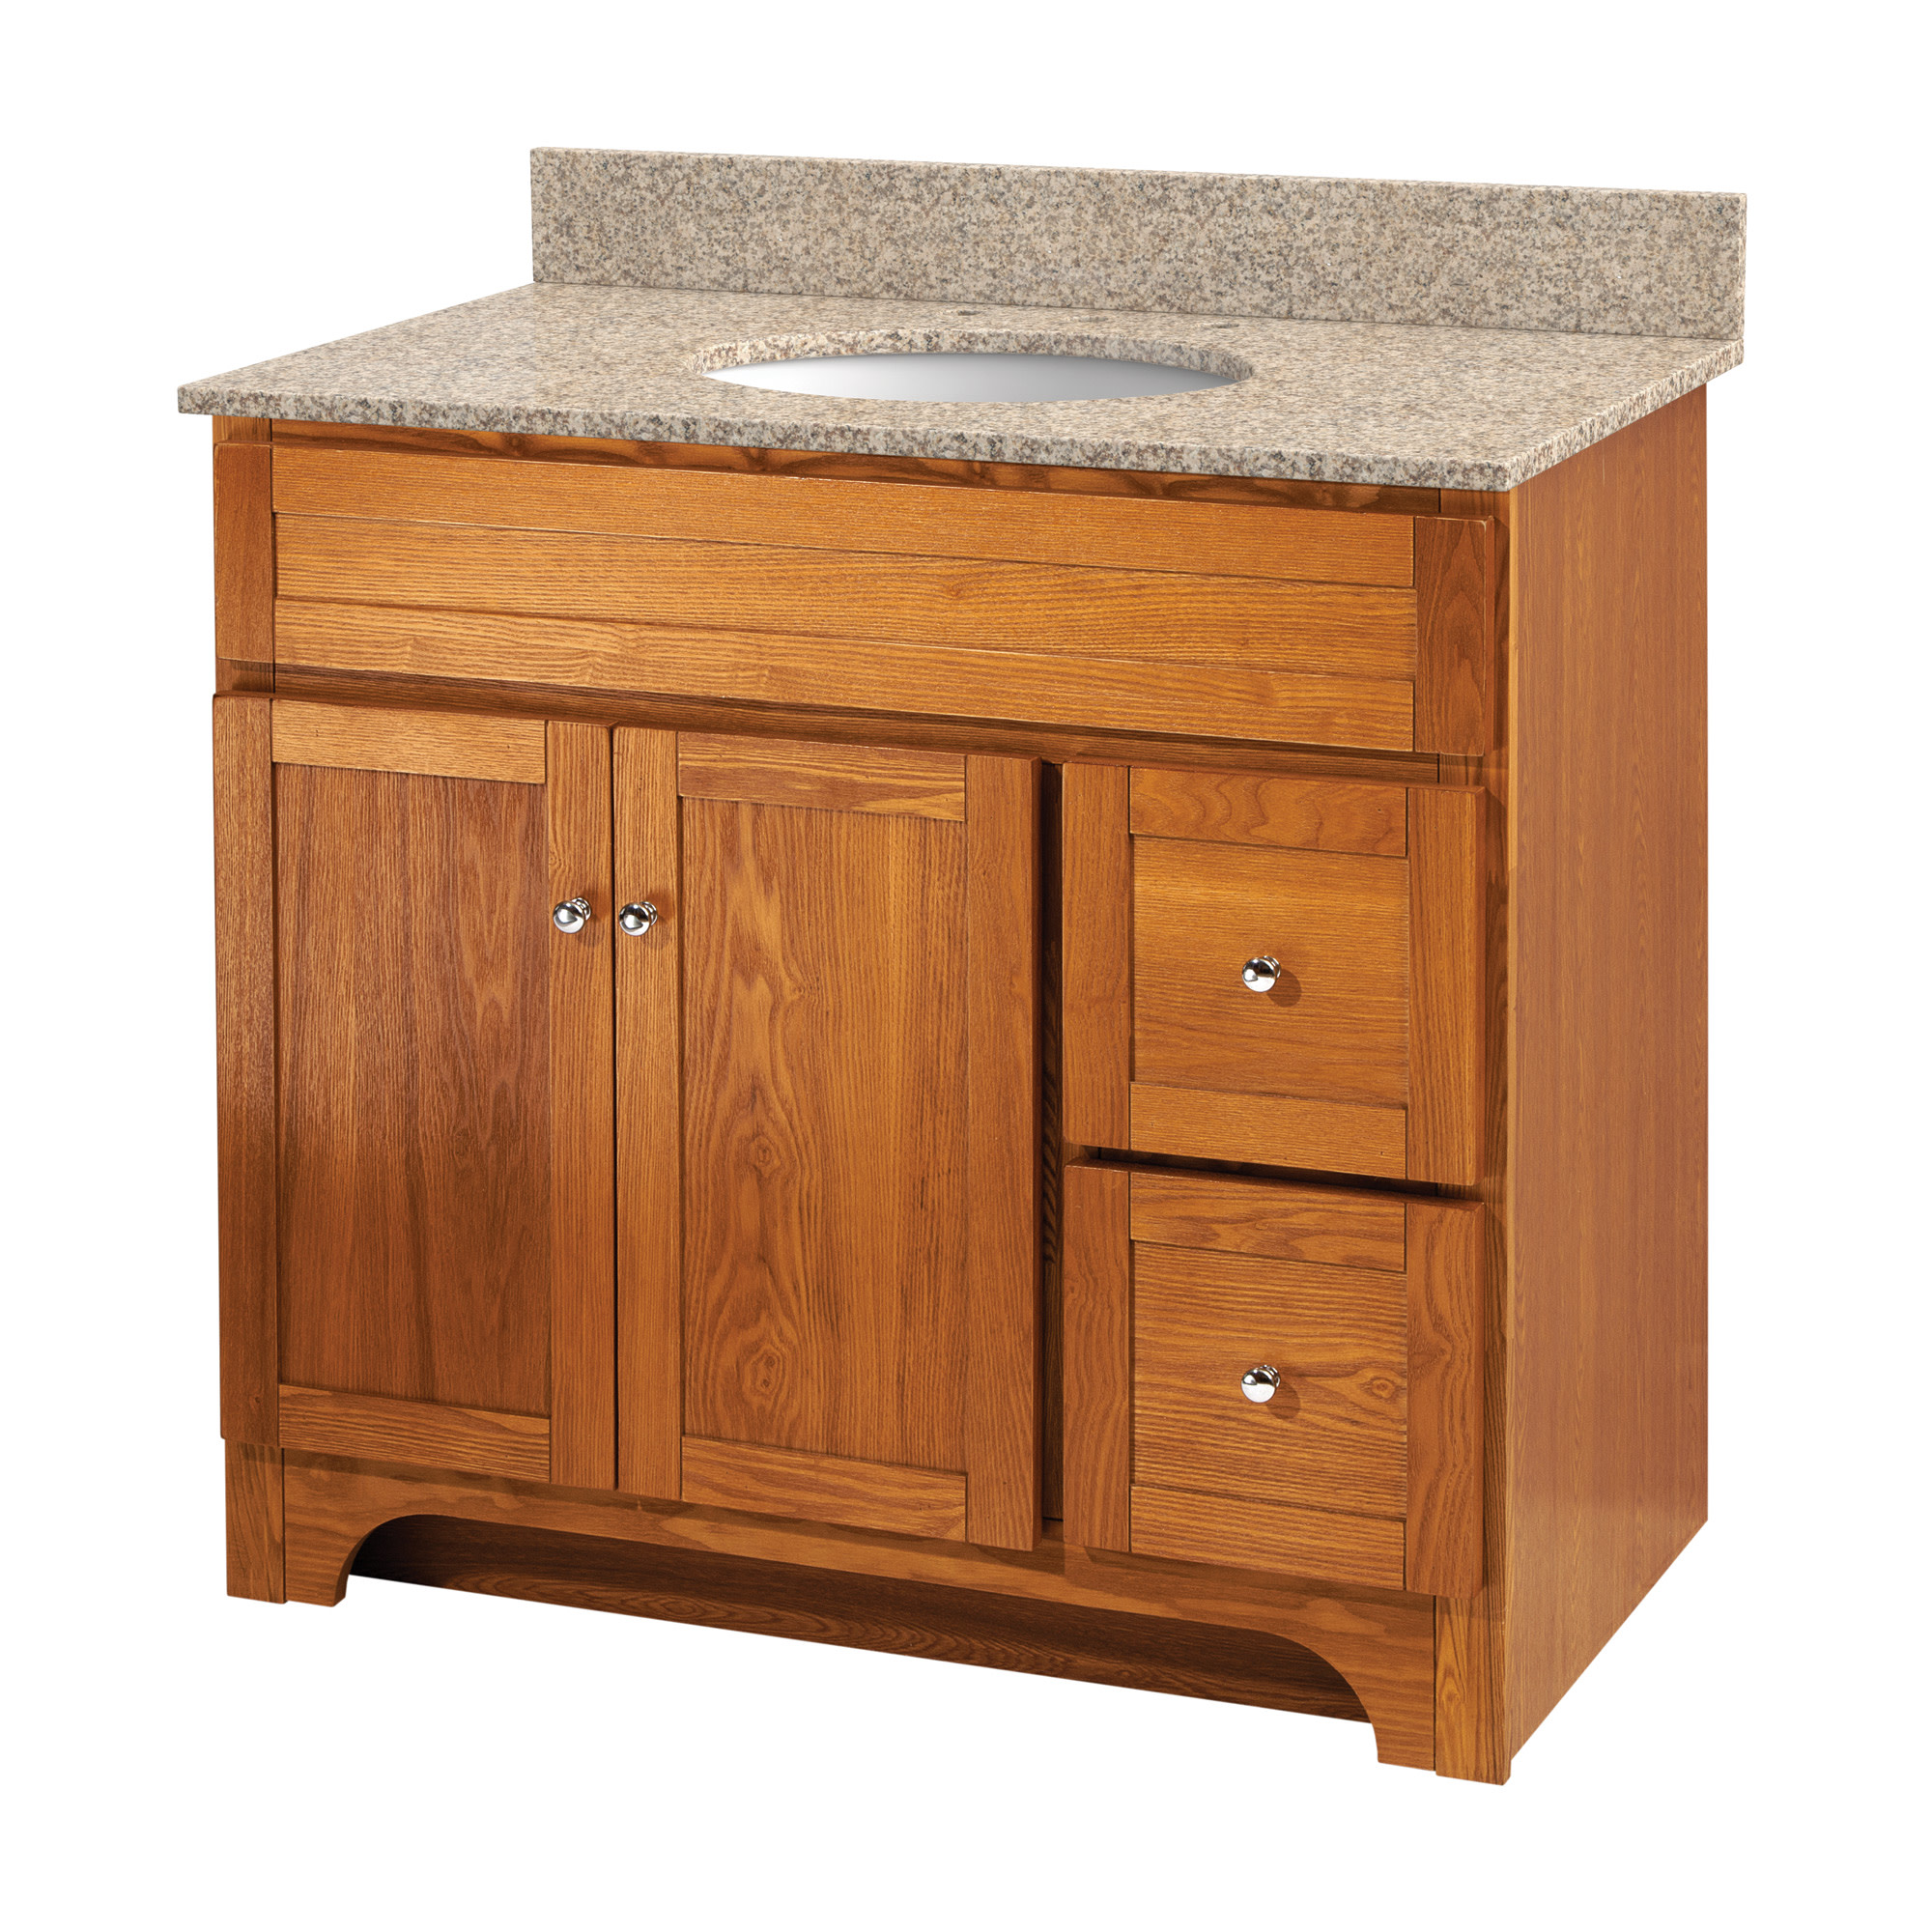 Details About Foremost Wroa3621d Worthington 36 Vanity Cabinet Only Oak